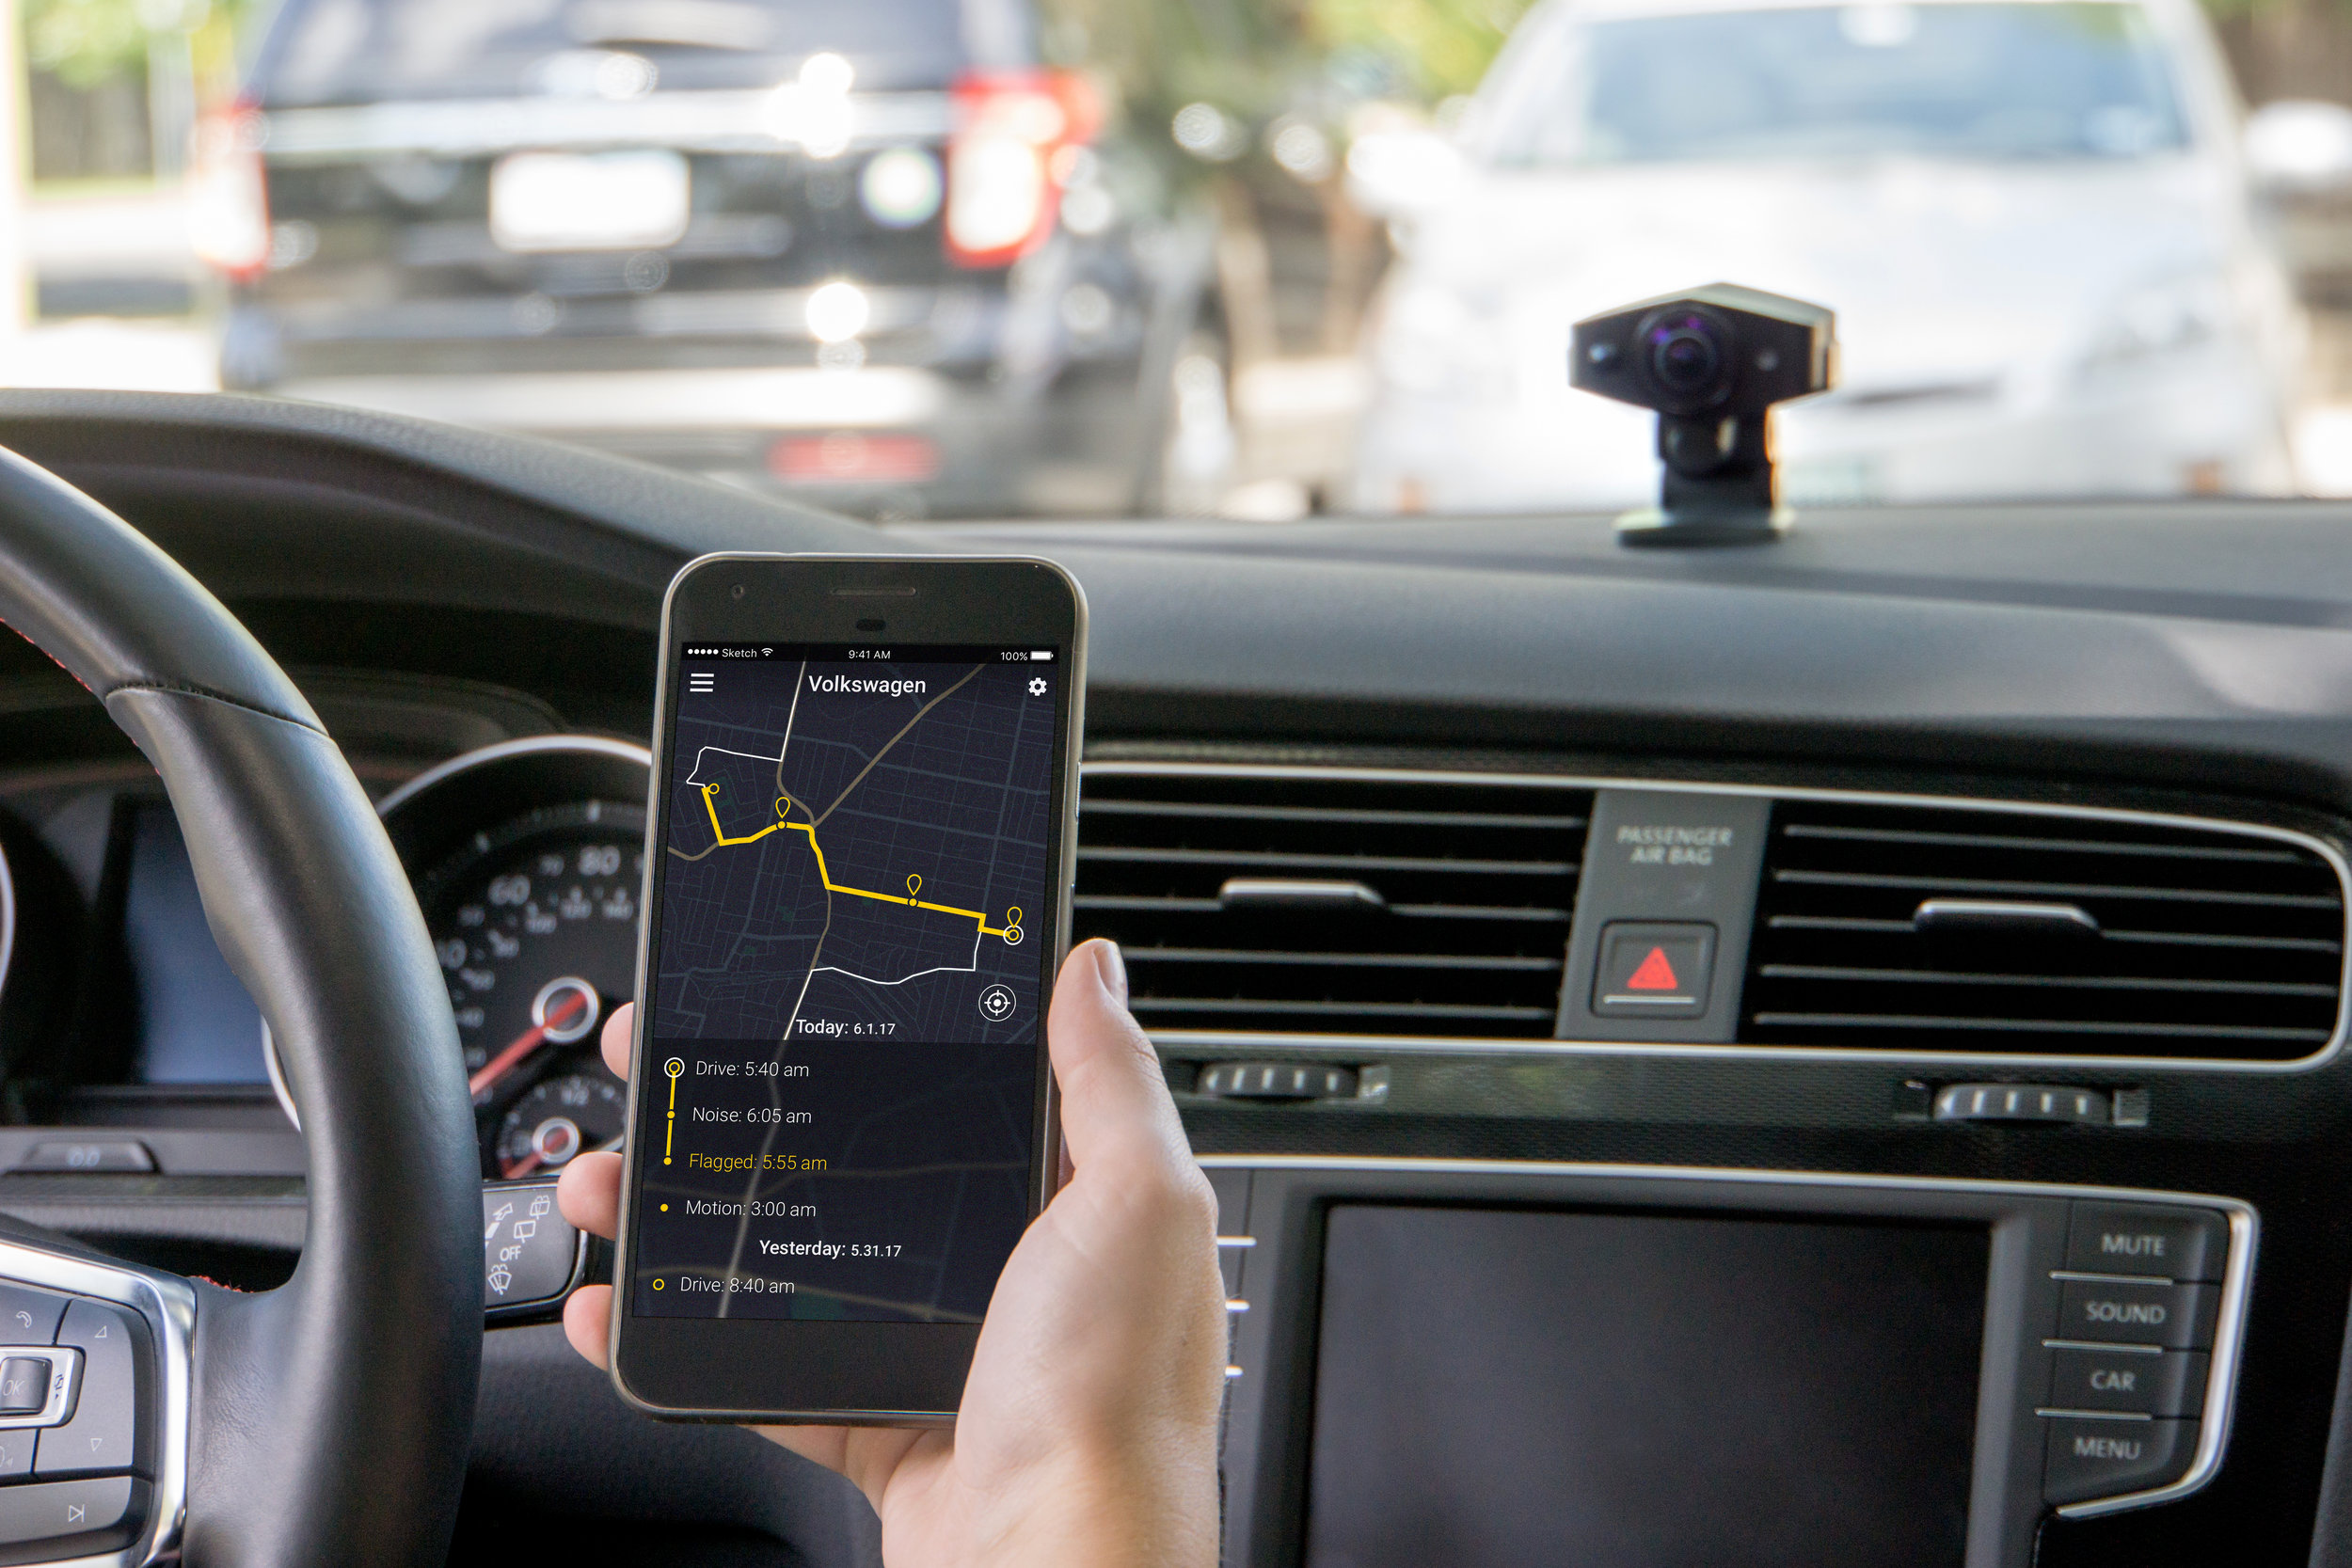 24/7 remote monitoring - Motion sensors and smart power management allow Agent to monitor your car even when you are away.